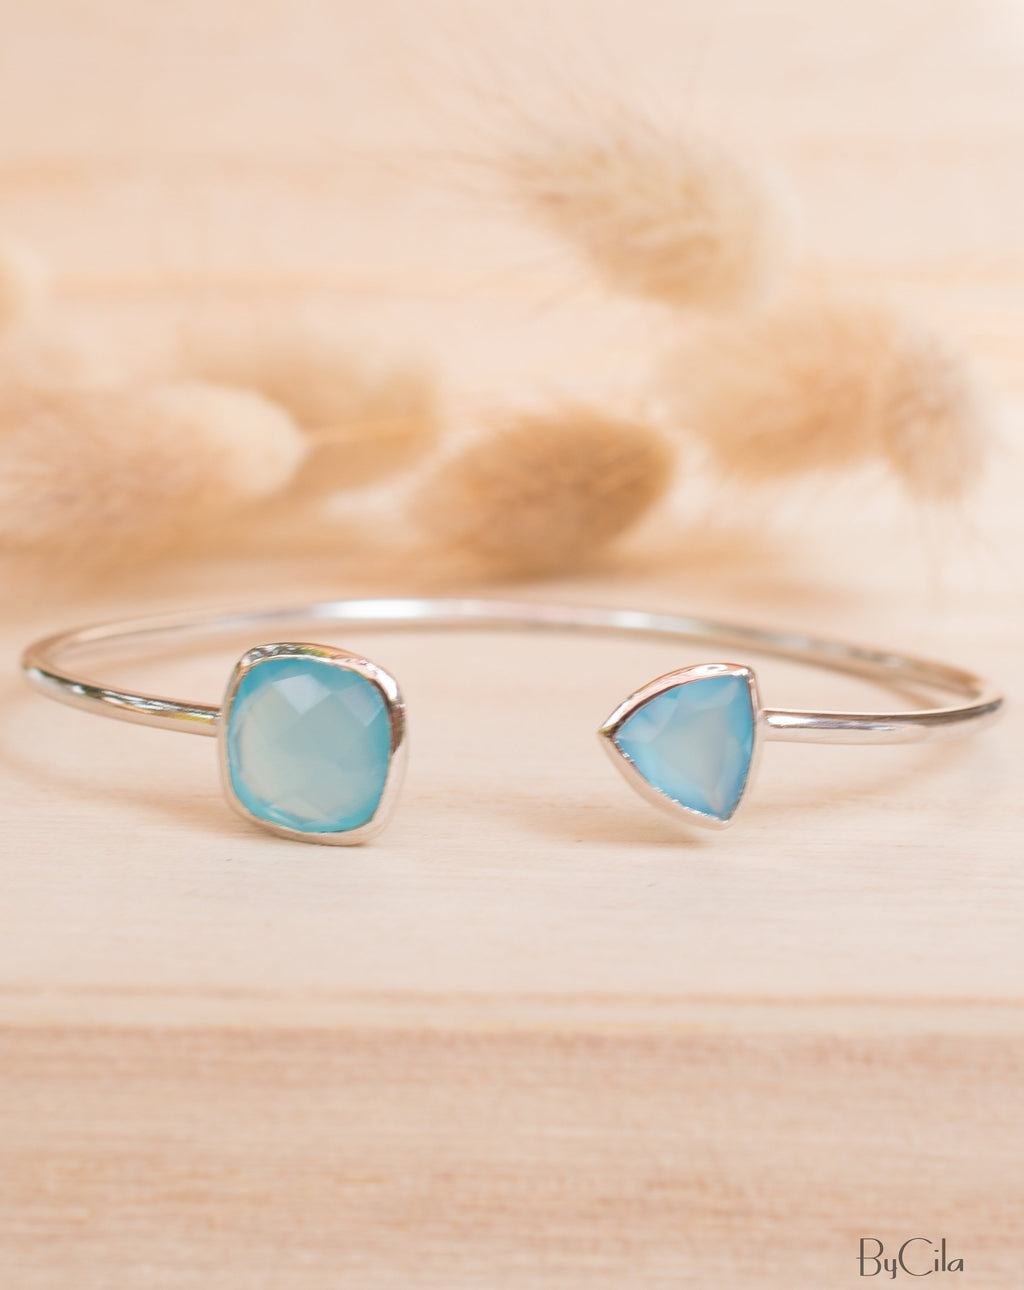 Blue Chalcedony Bangle Bracelet *Gold Plated 18k or Silver Plated* Gemstone * Gypsy * Adjustable * Statement * Stacking * Layering * BJB009B